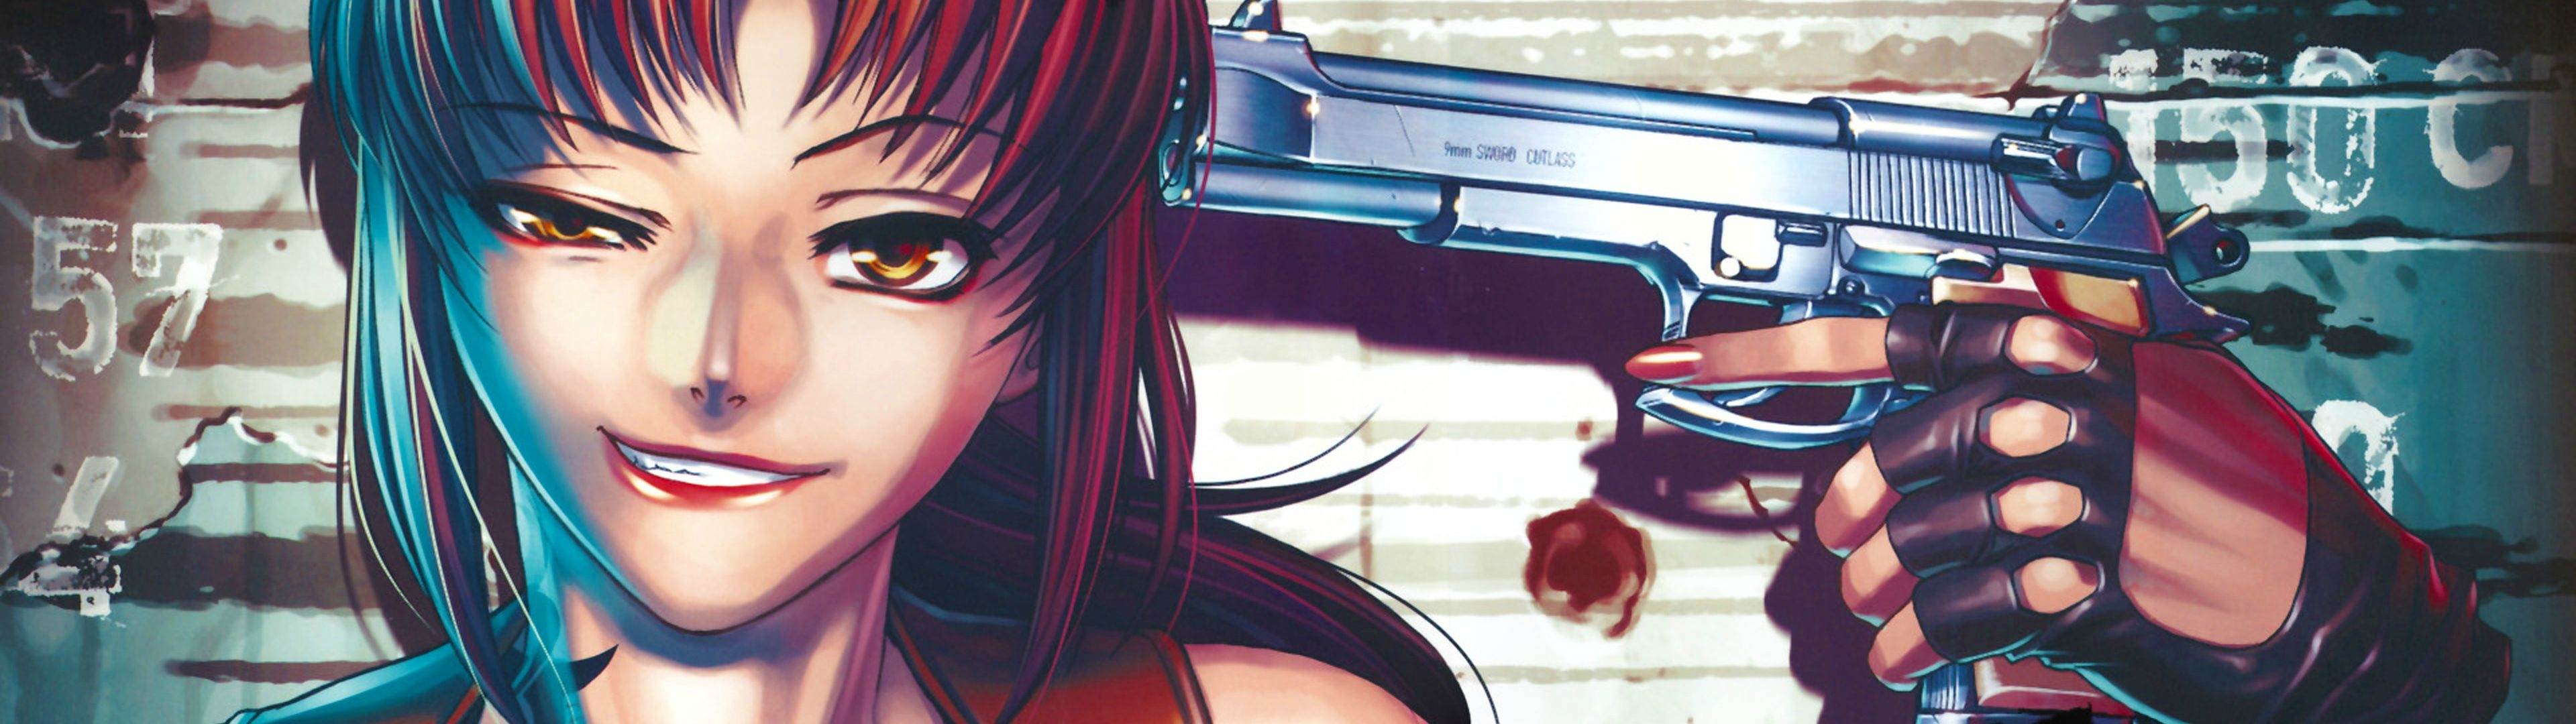 Gun, Red Hair